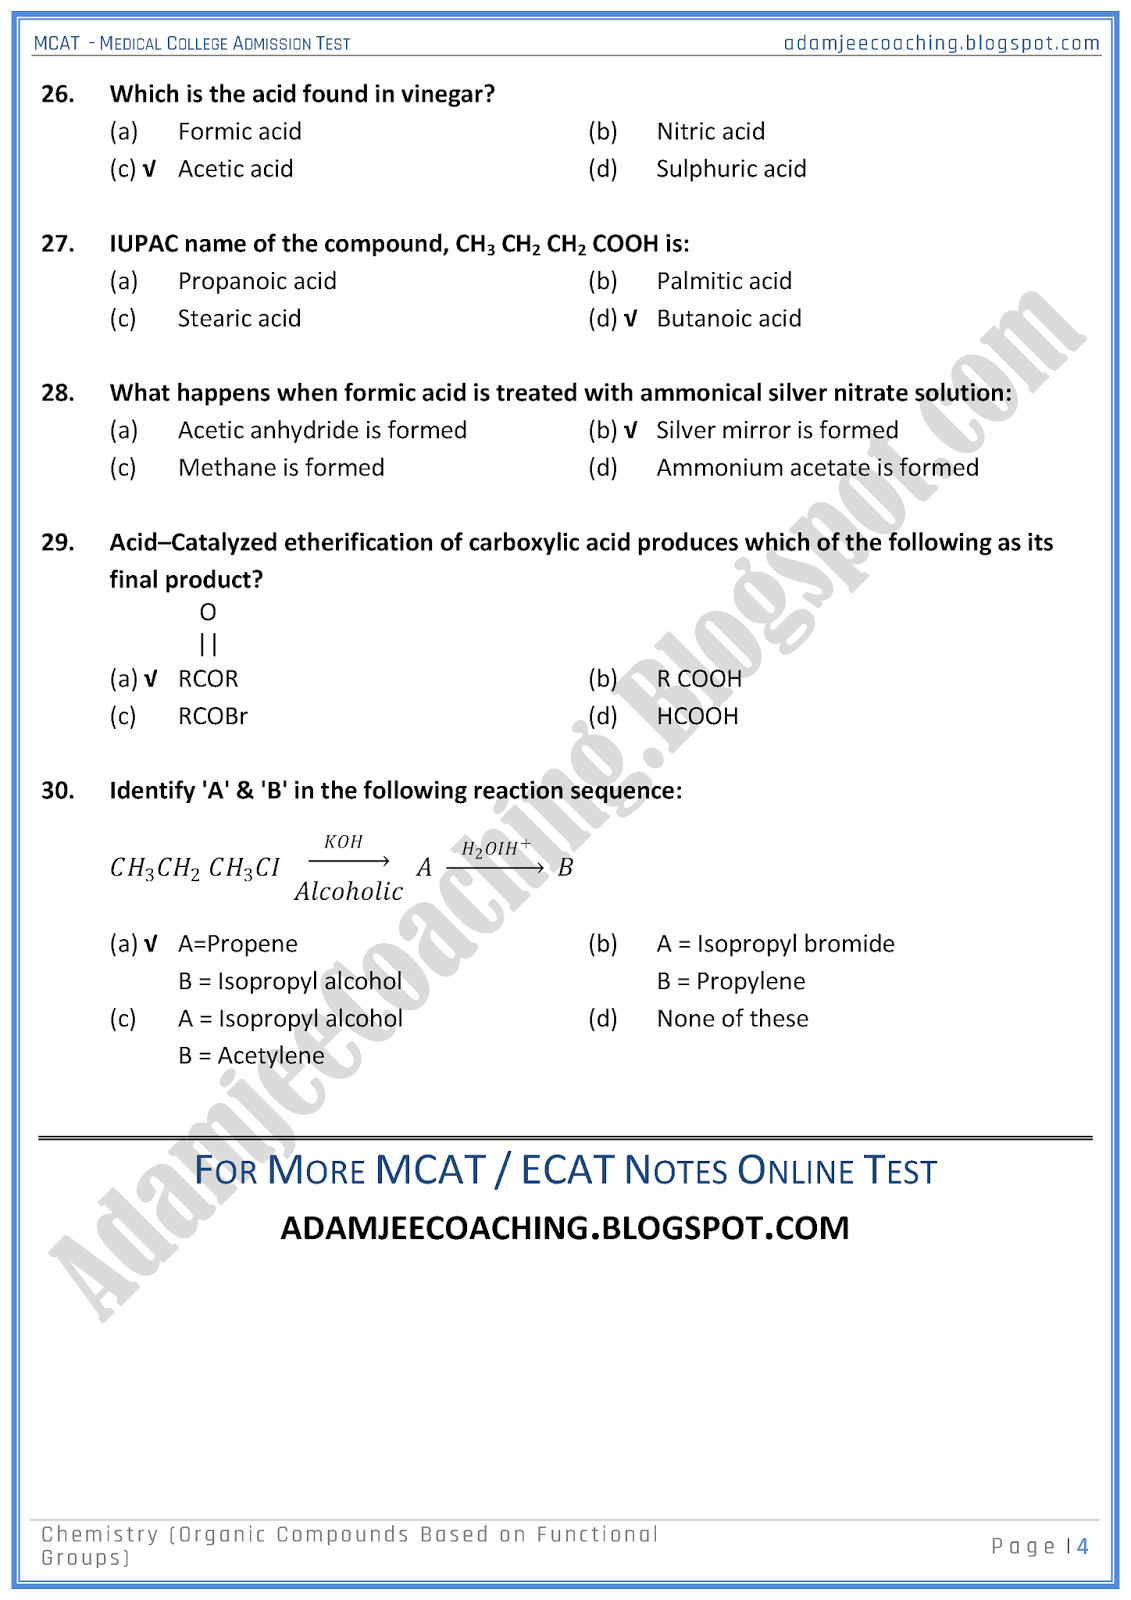 mcat-chemistry-organic-compounds-based-on-functional-groups-mcqs-for-medical-entry-test